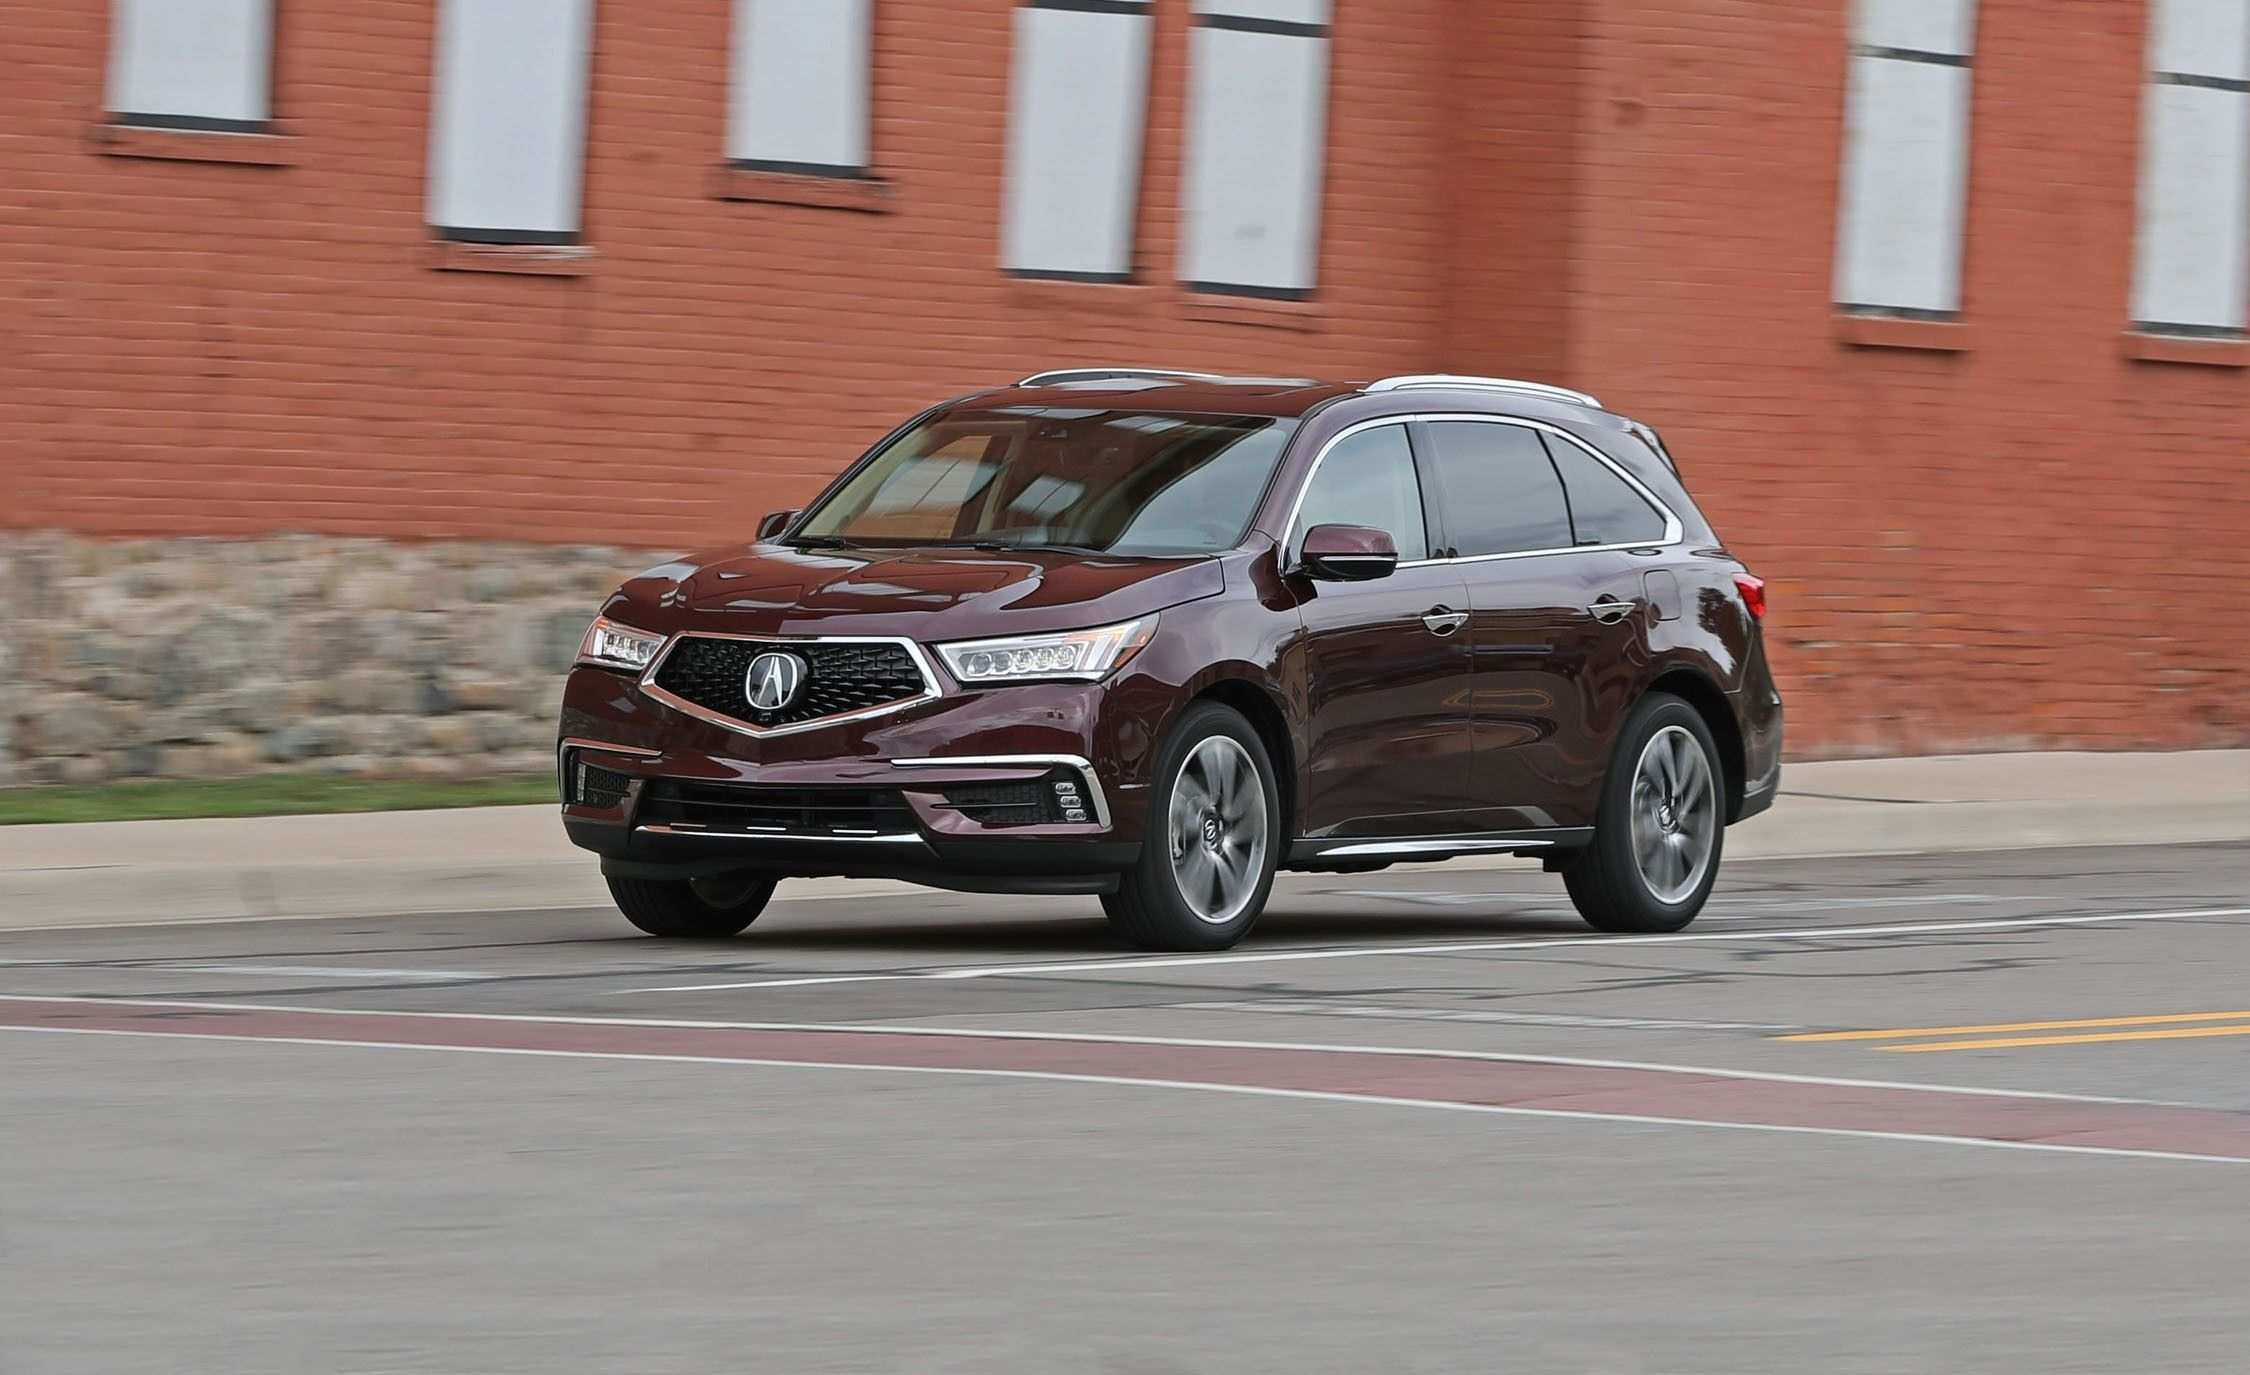 30 Best Review New 2019 Acura Rdx Zero To 60 Spy Shoot Engine with New 2019 Acura Rdx Zero To 60 Spy Shoot